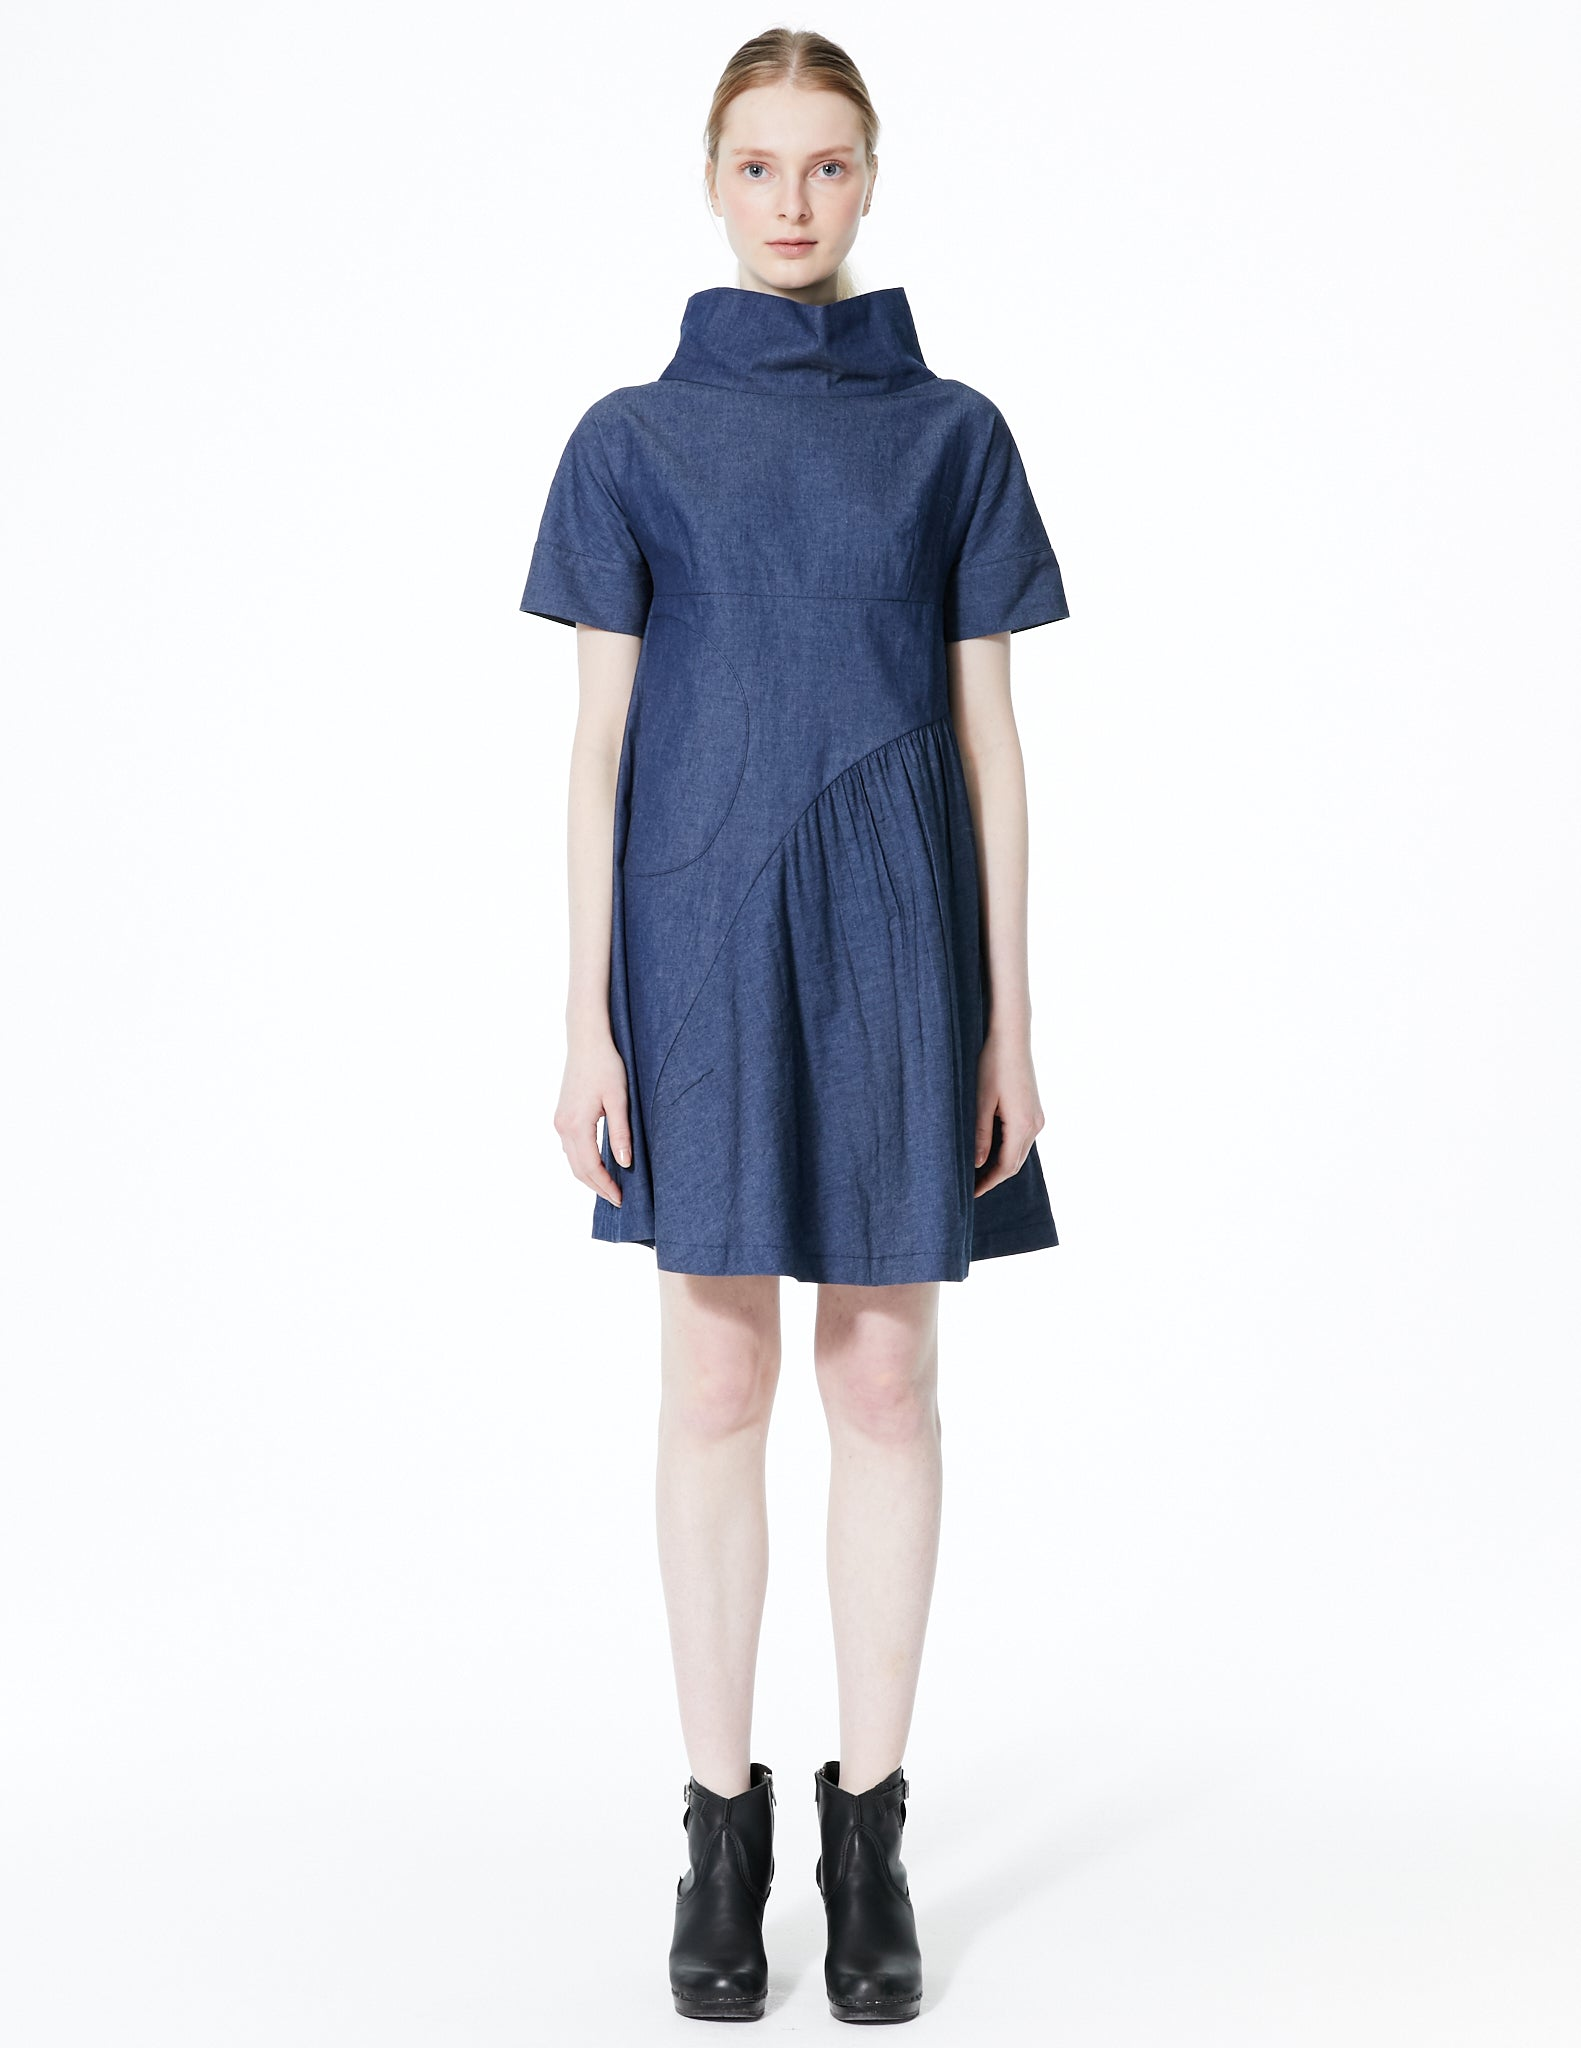 short a-line denim dress with high collar and curved gathered panel. made in new york city